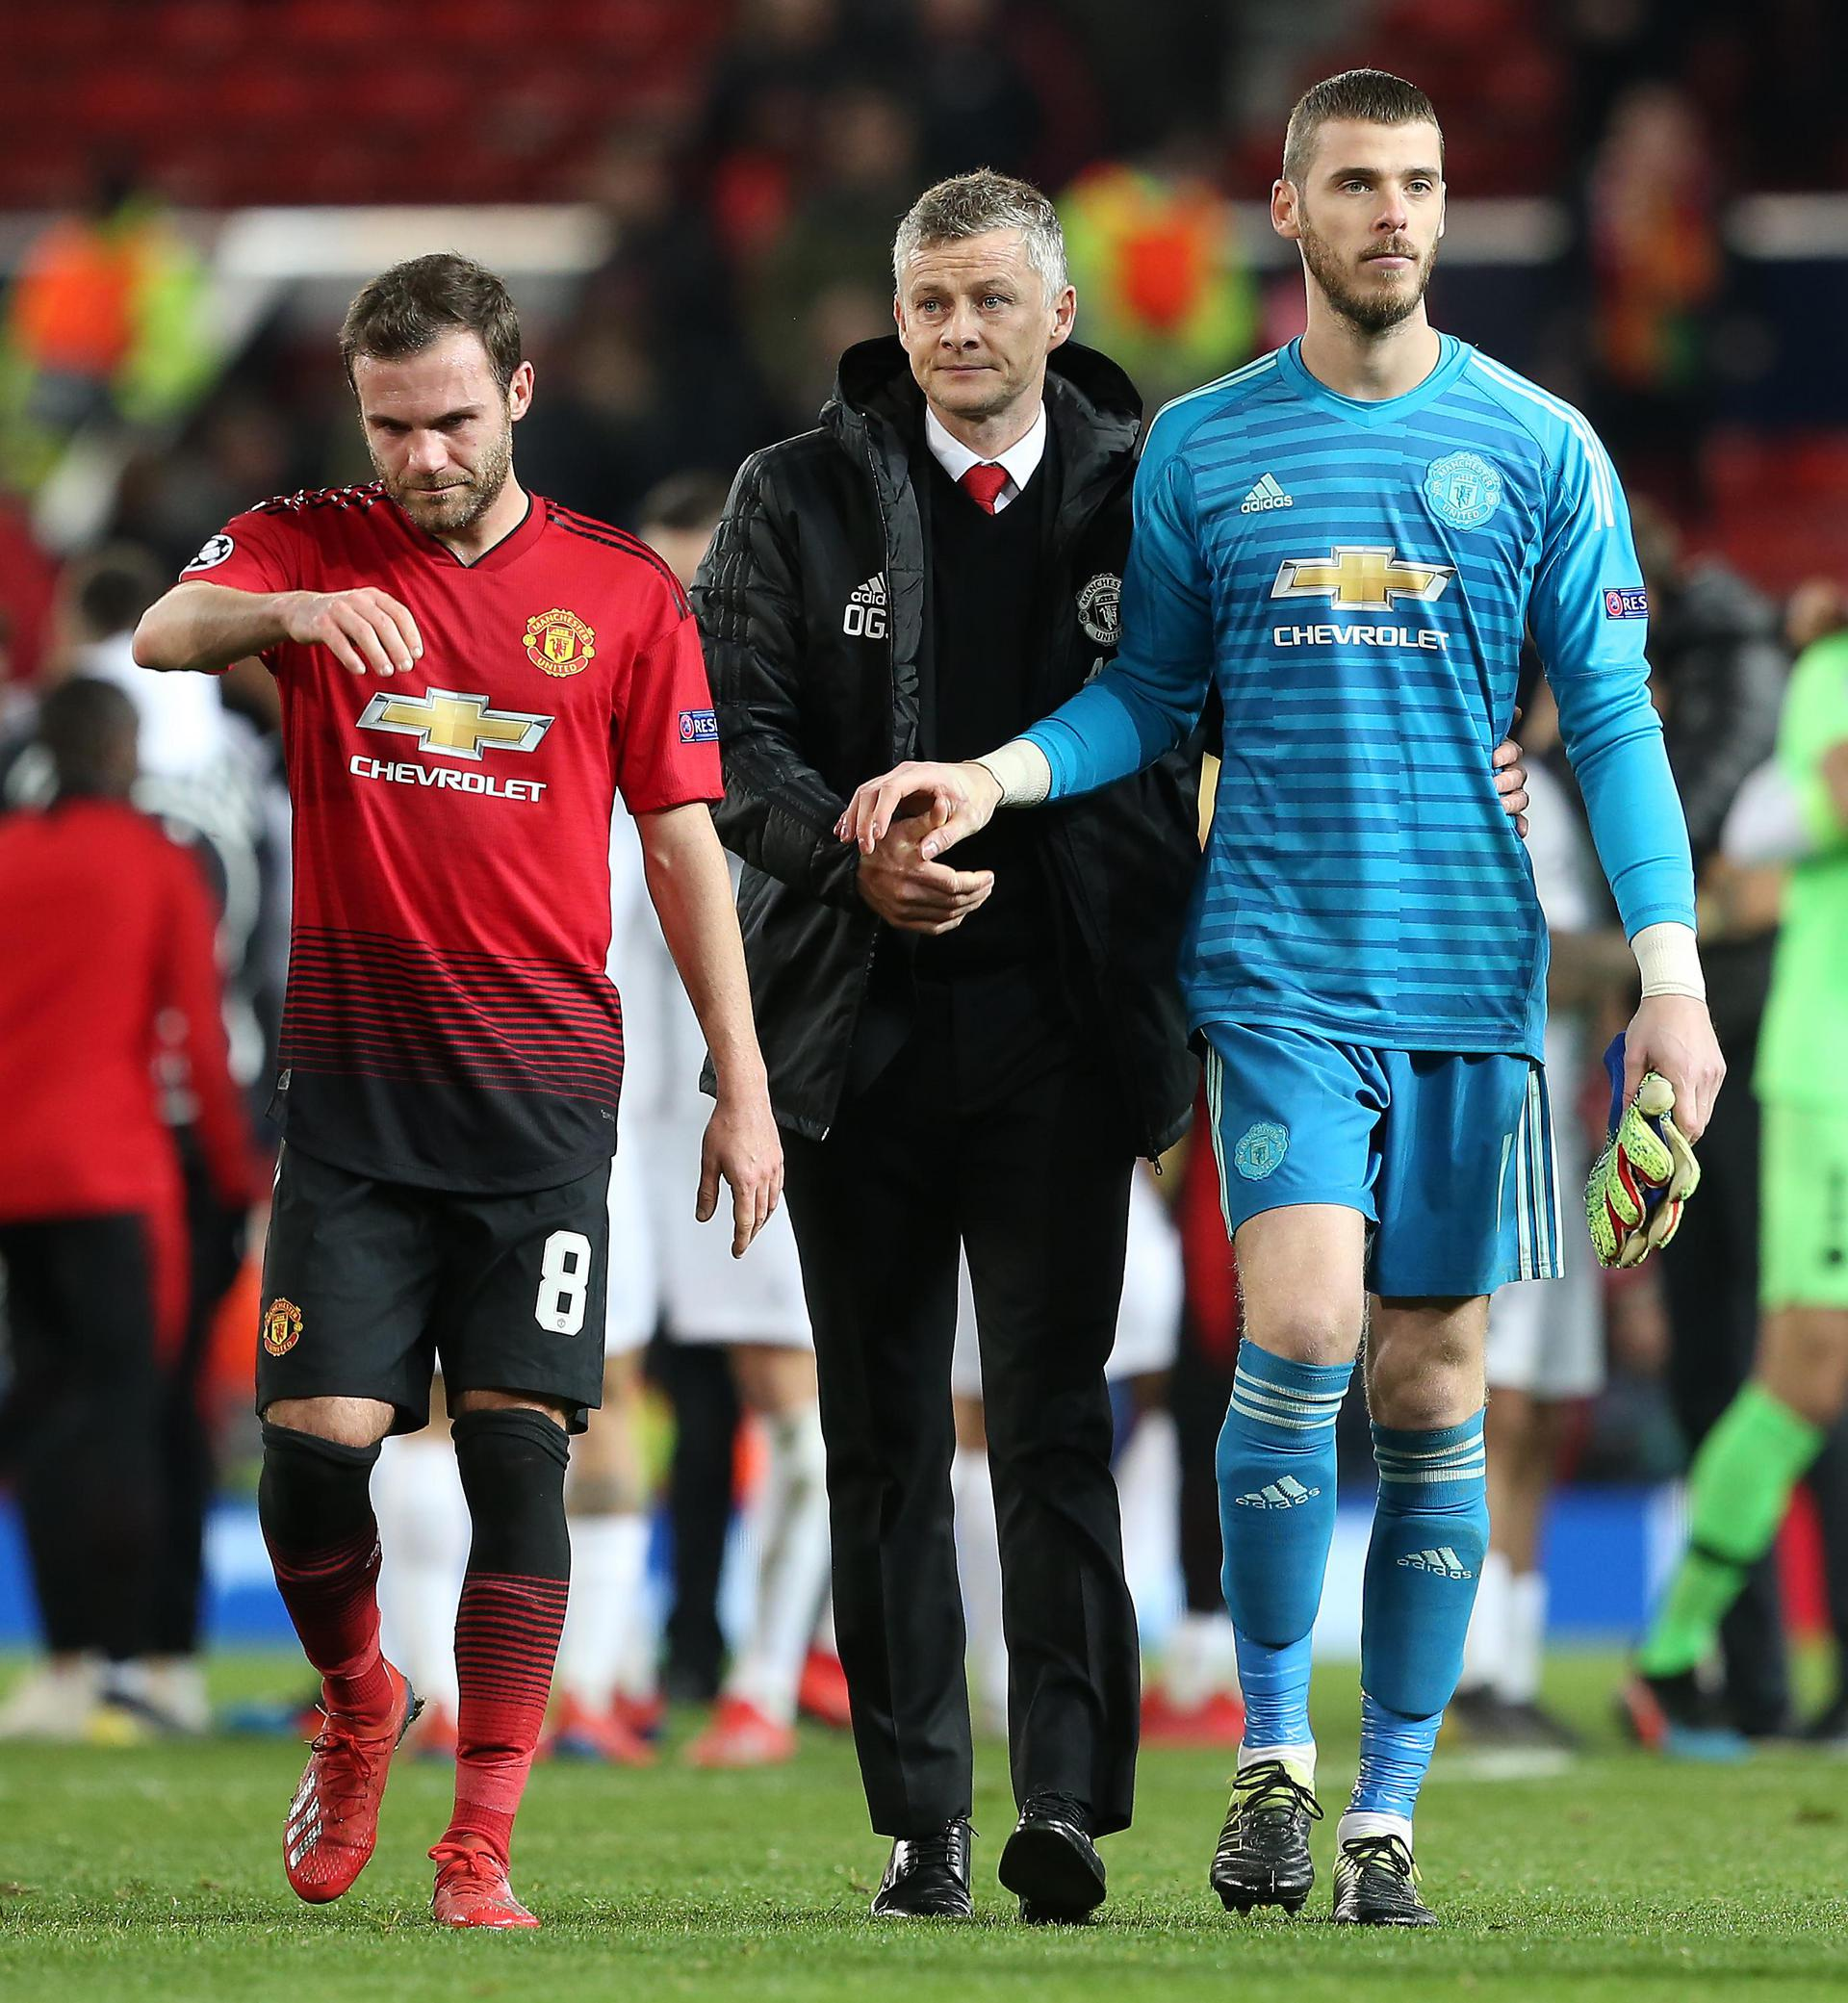 Juan Mata, Ole Gunnar Solskjaer and David De Gea walk off the pitch at full-time in the United v PSG match